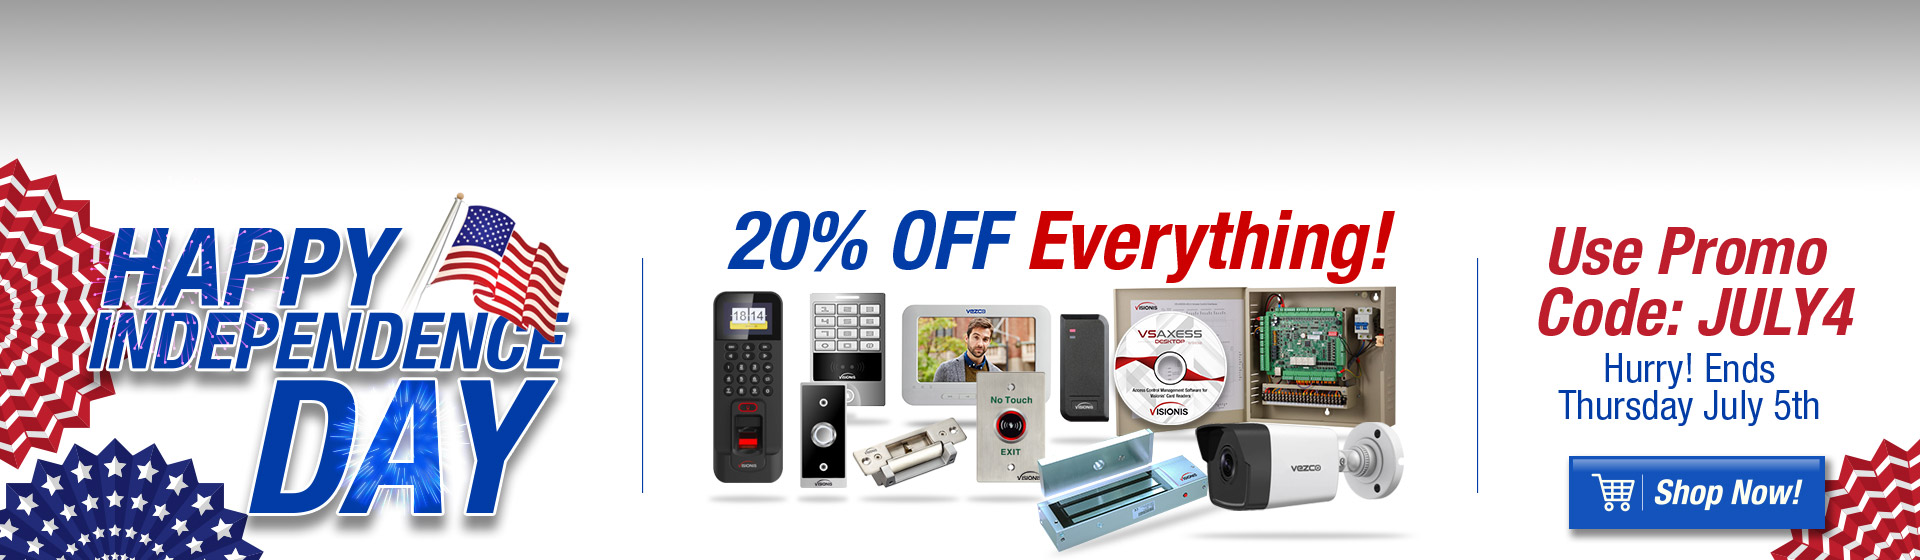 July 4th Promotion